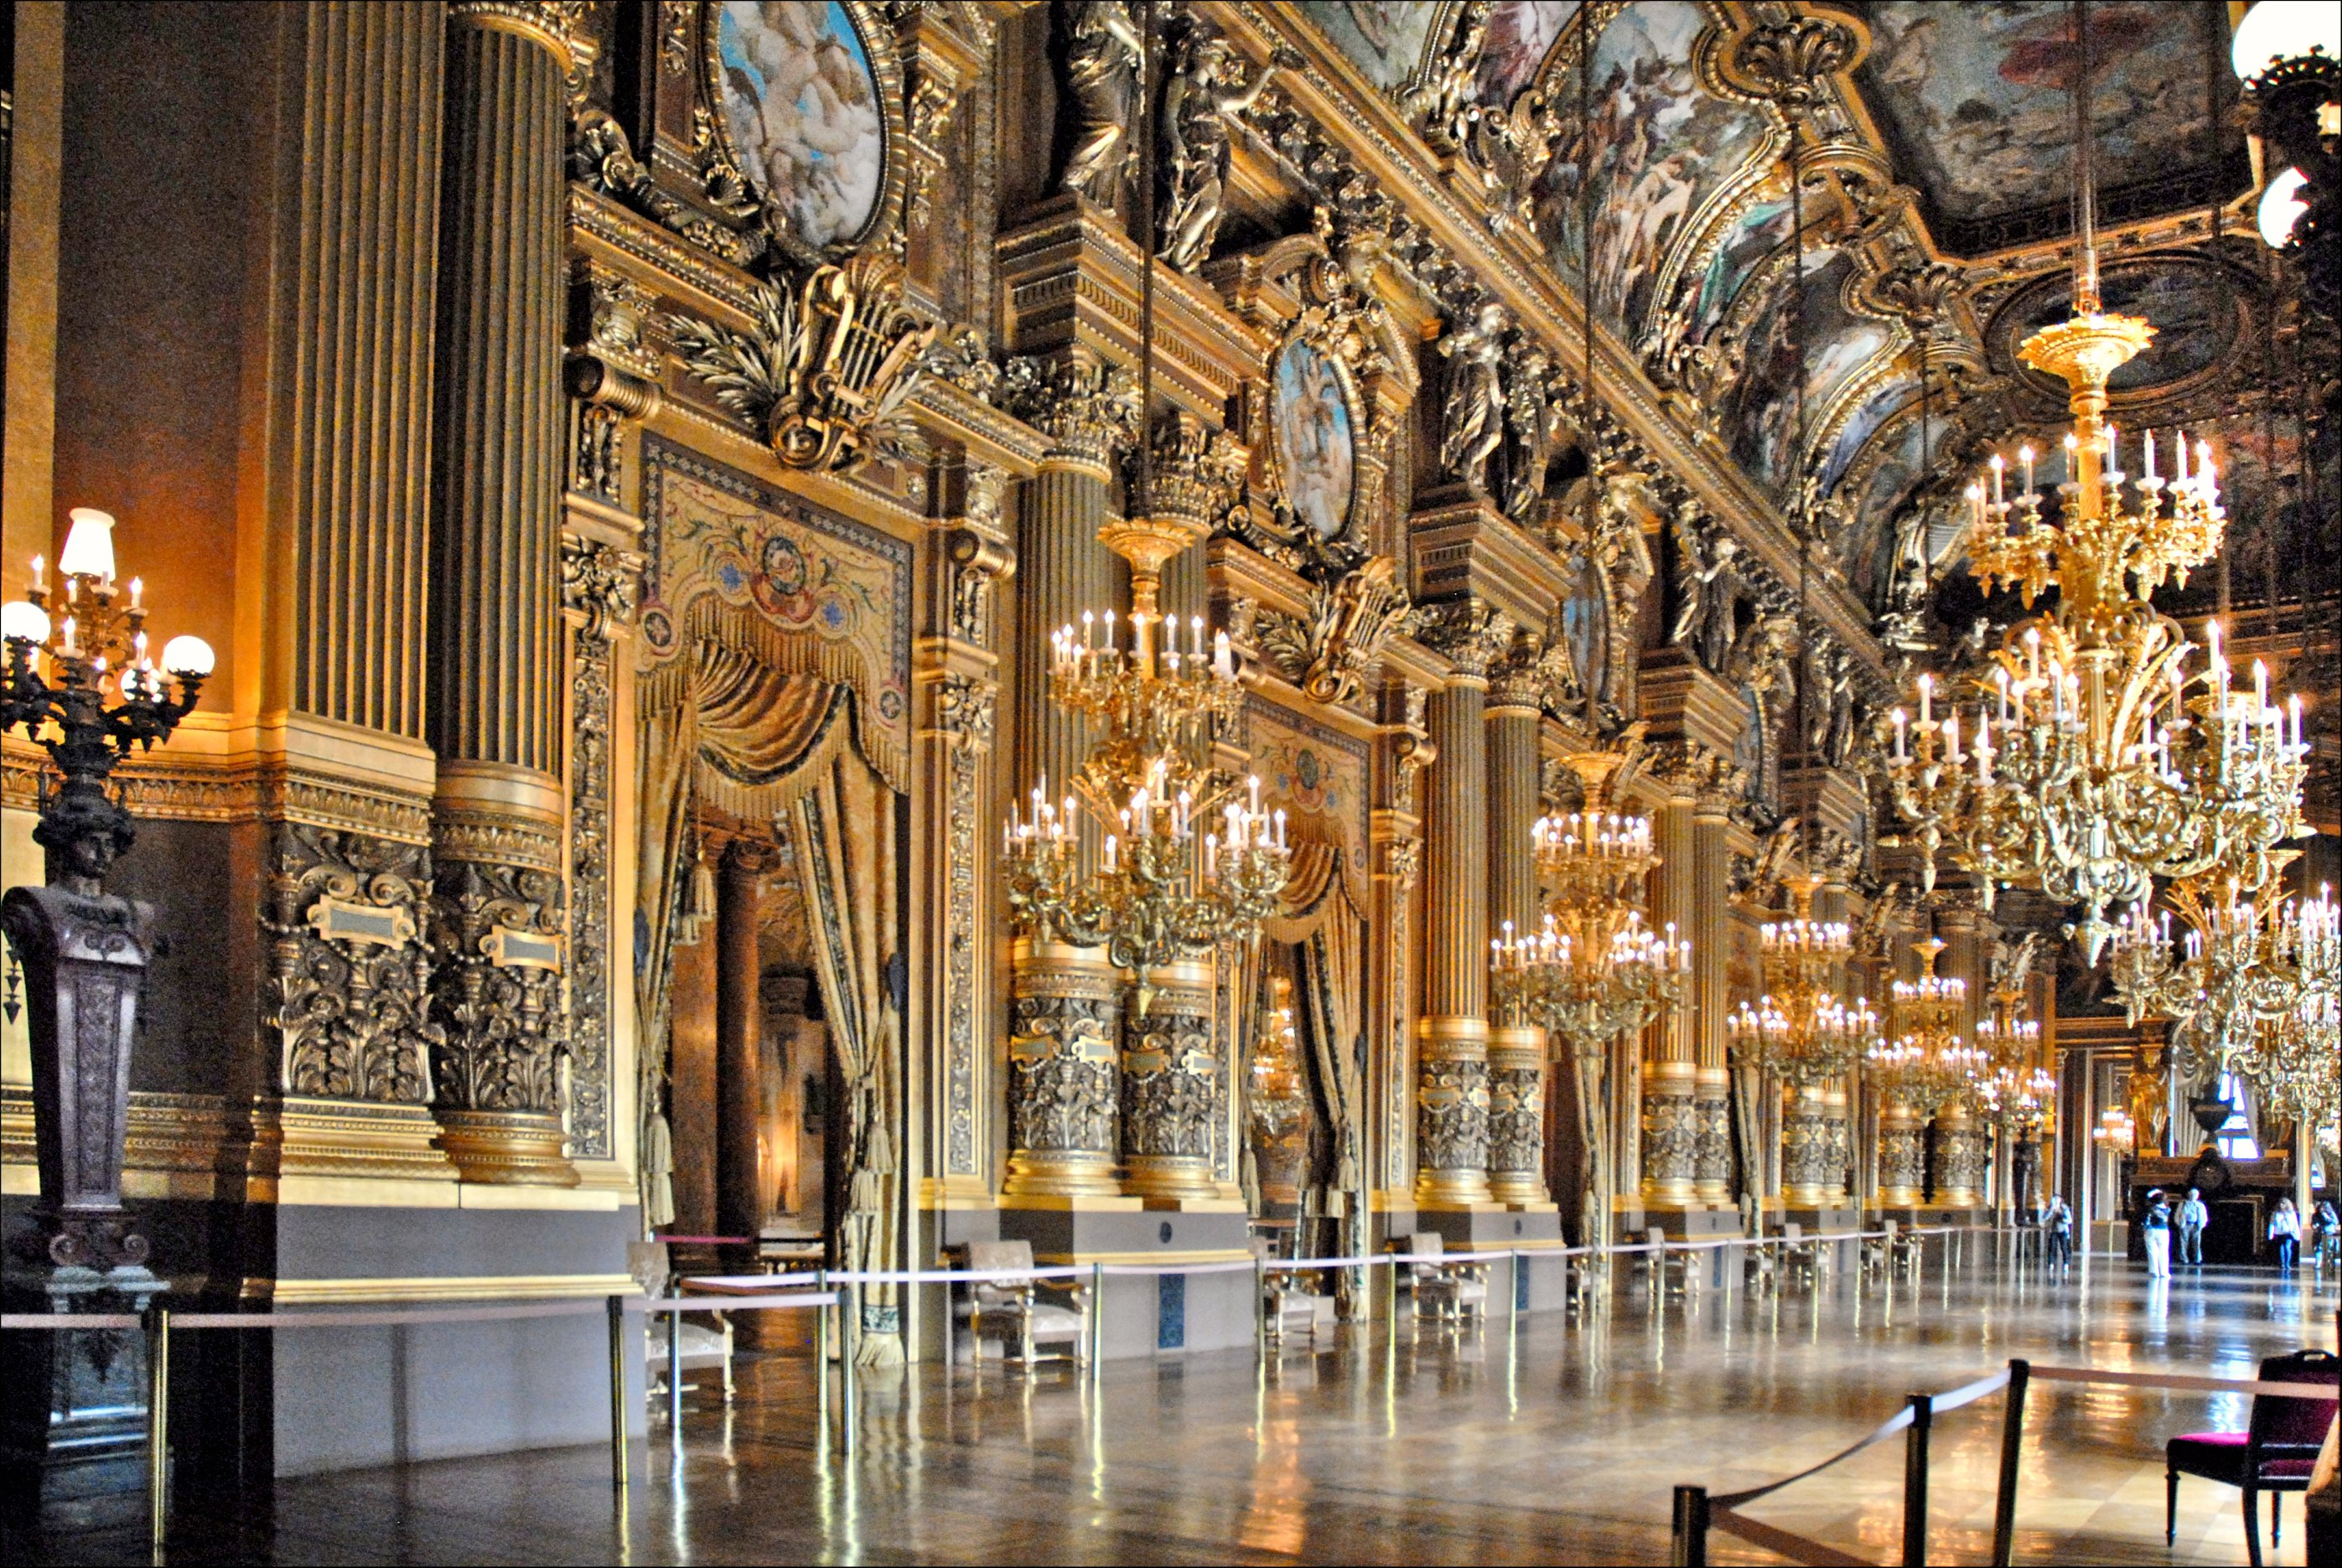 Le Grand Foyer Opera Garnier : File le grand foyer de l op�ra garnier paris g